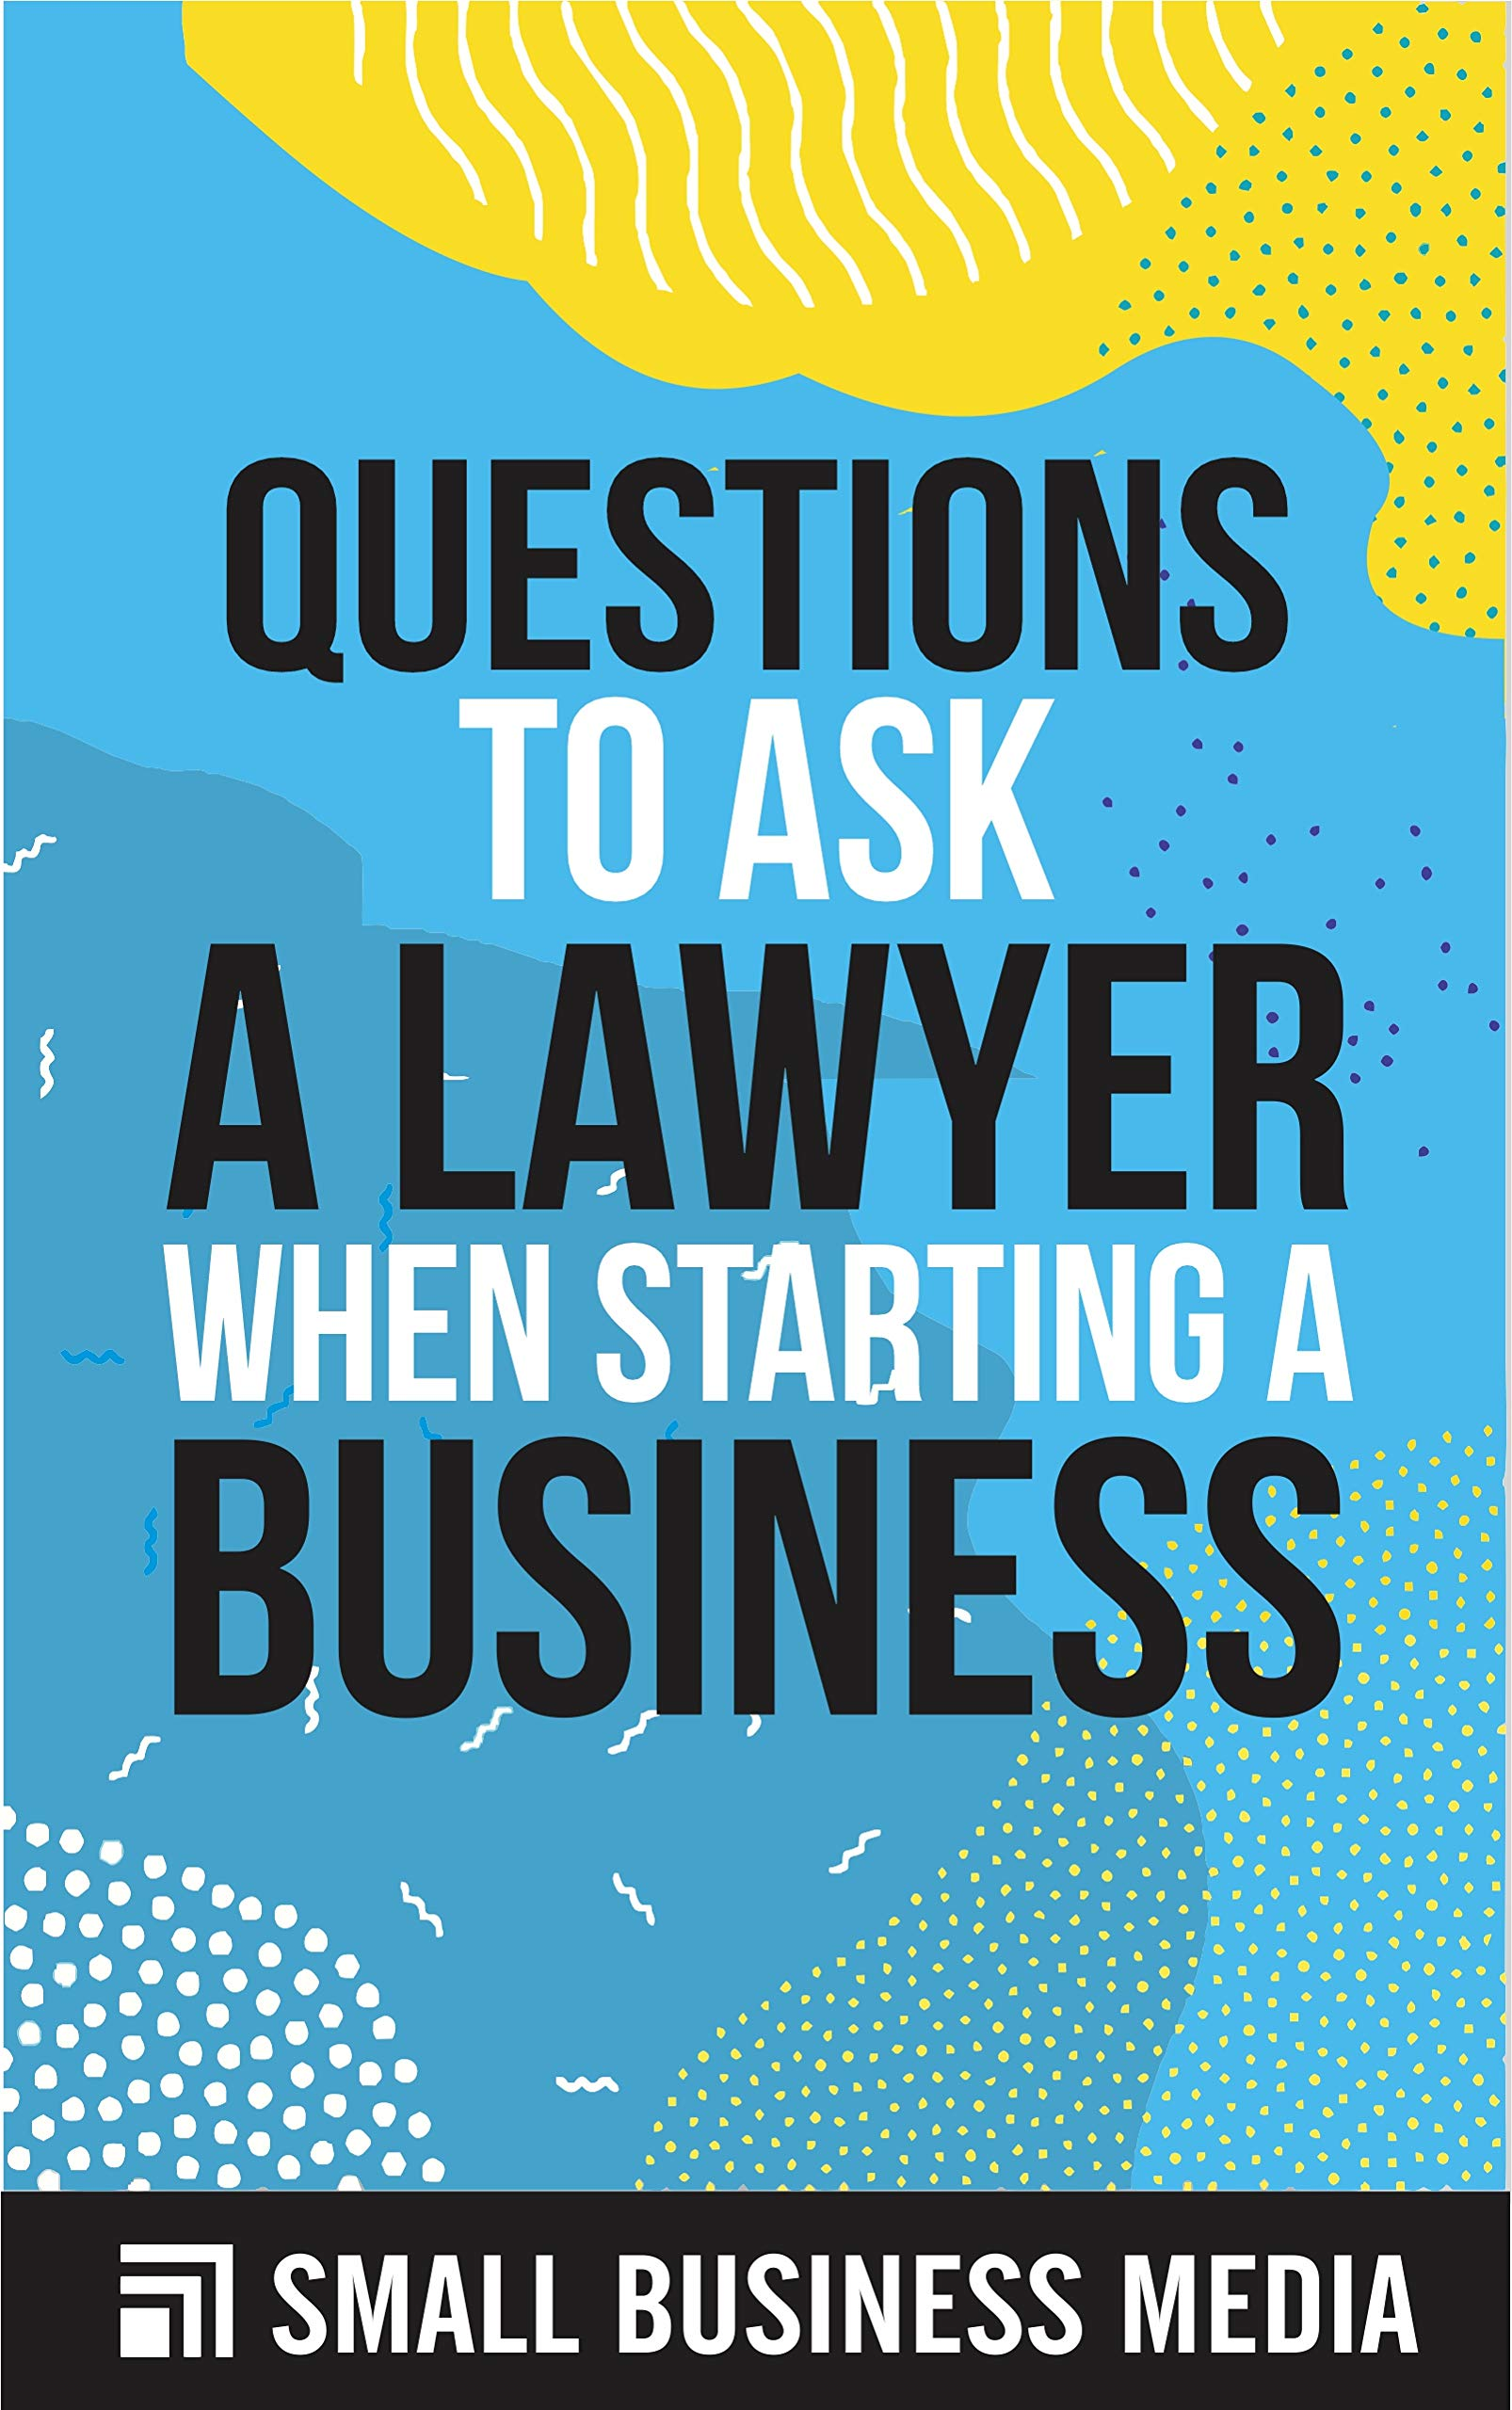 Questions To Ask A Lawyer When Starting A Business: Starting a Business For Beginner Entrepreneurs   Entrepreneurship For Men and Women   Short Read